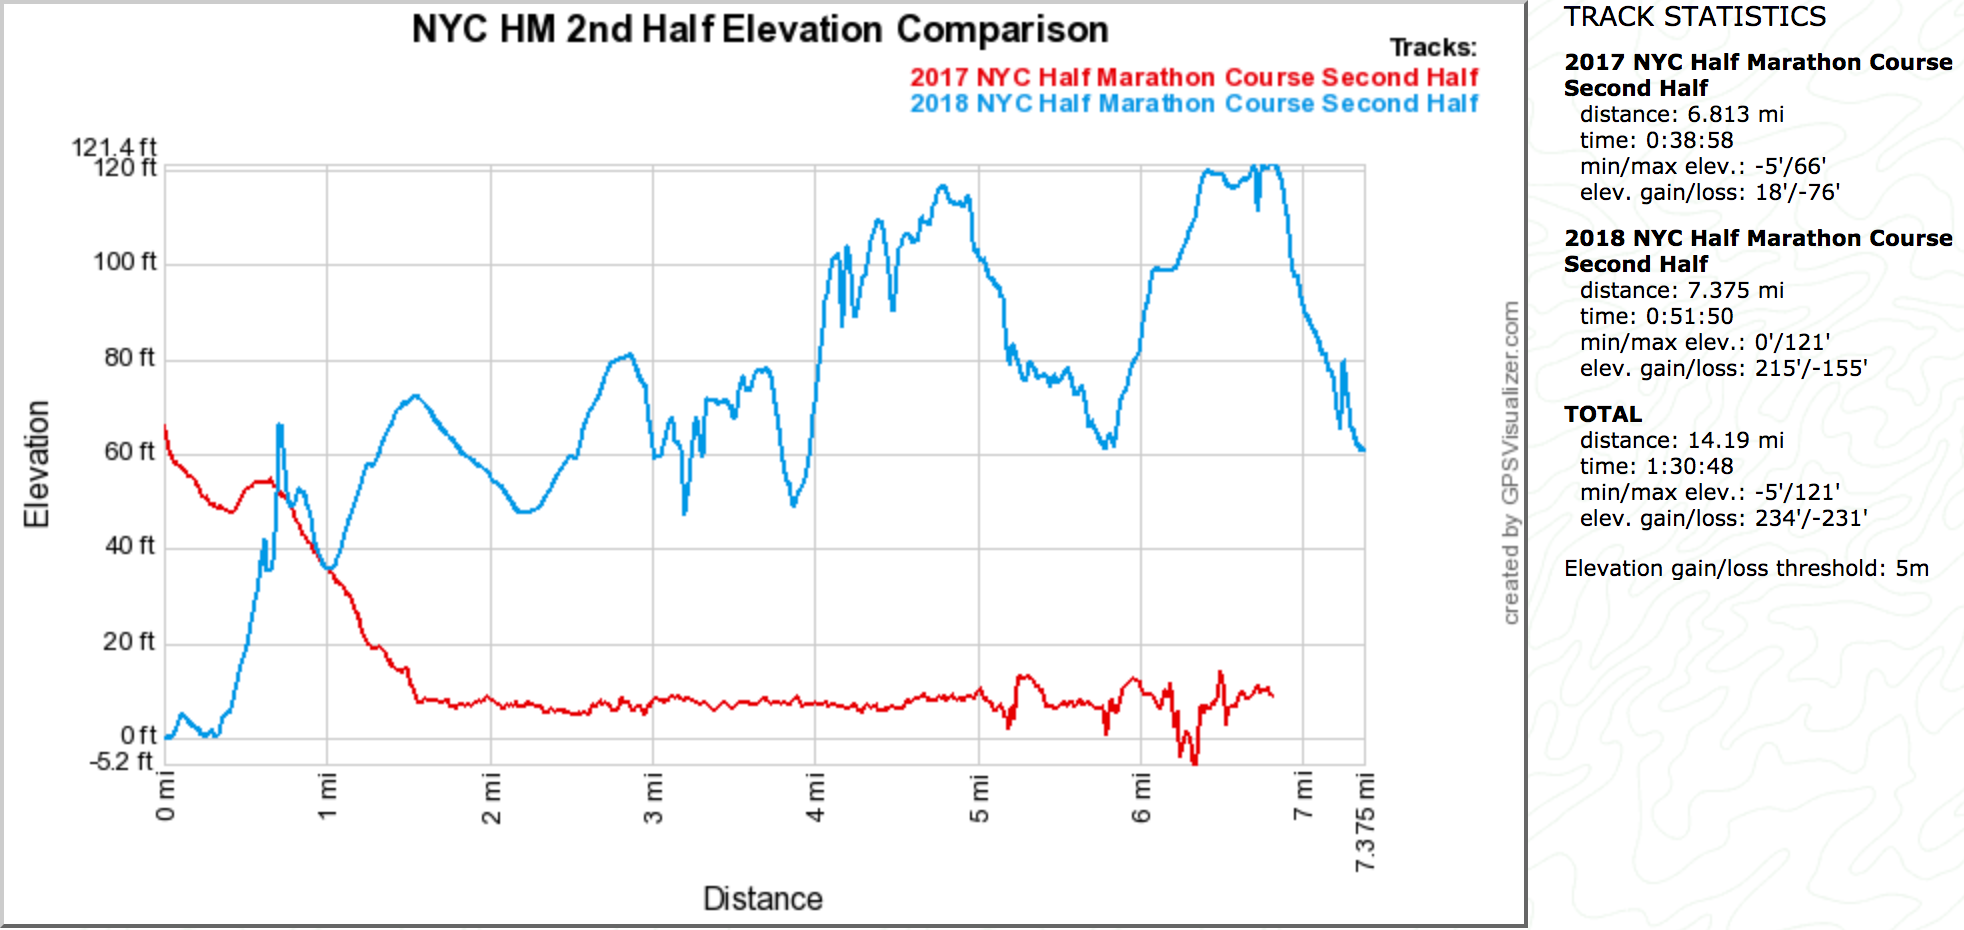 NYC HM 2nd Half Elevation Comparison